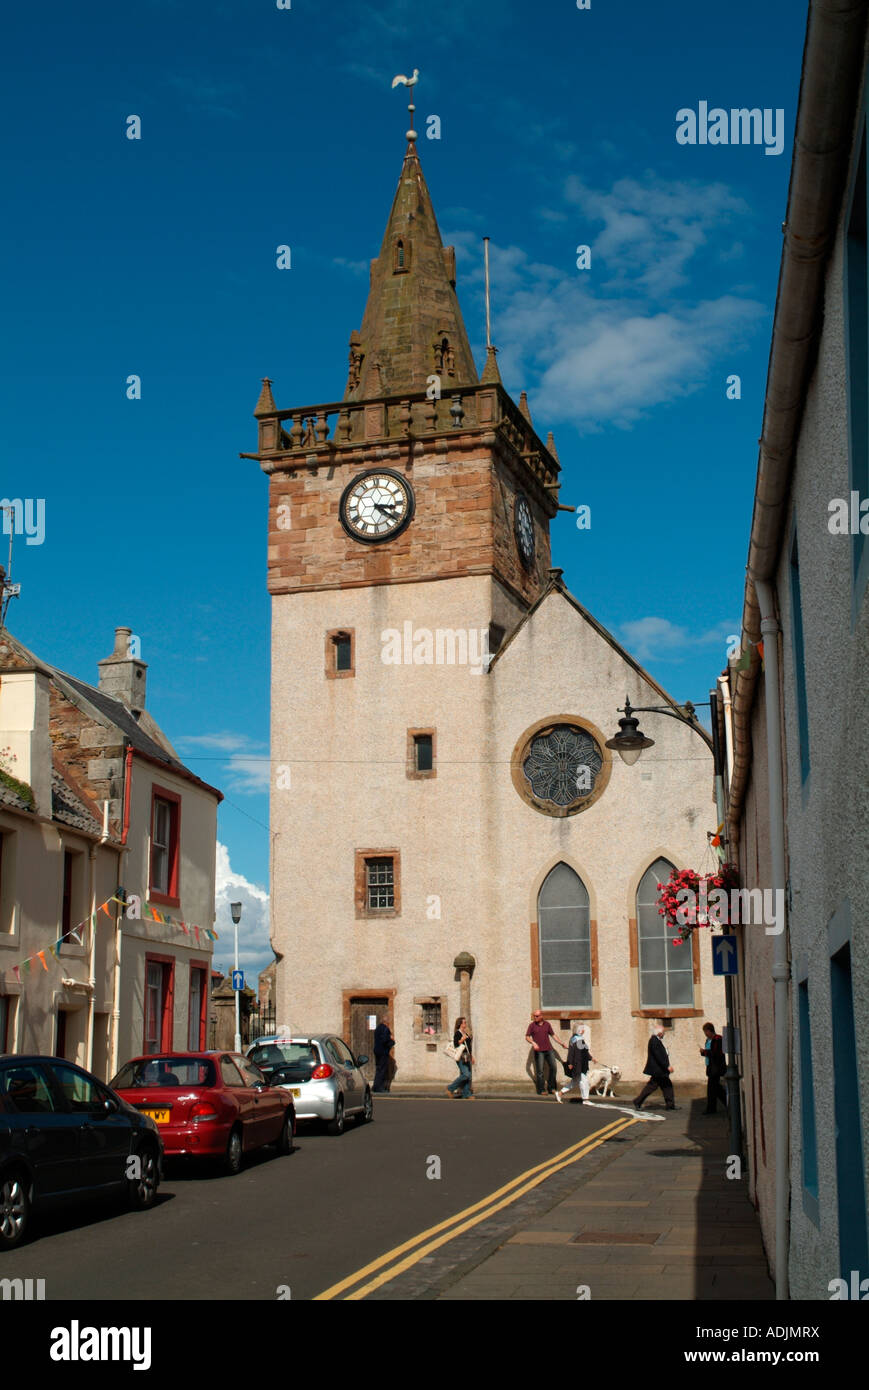 The Tolbooth and gable end of the Parish Church from the High Street - Stock Image